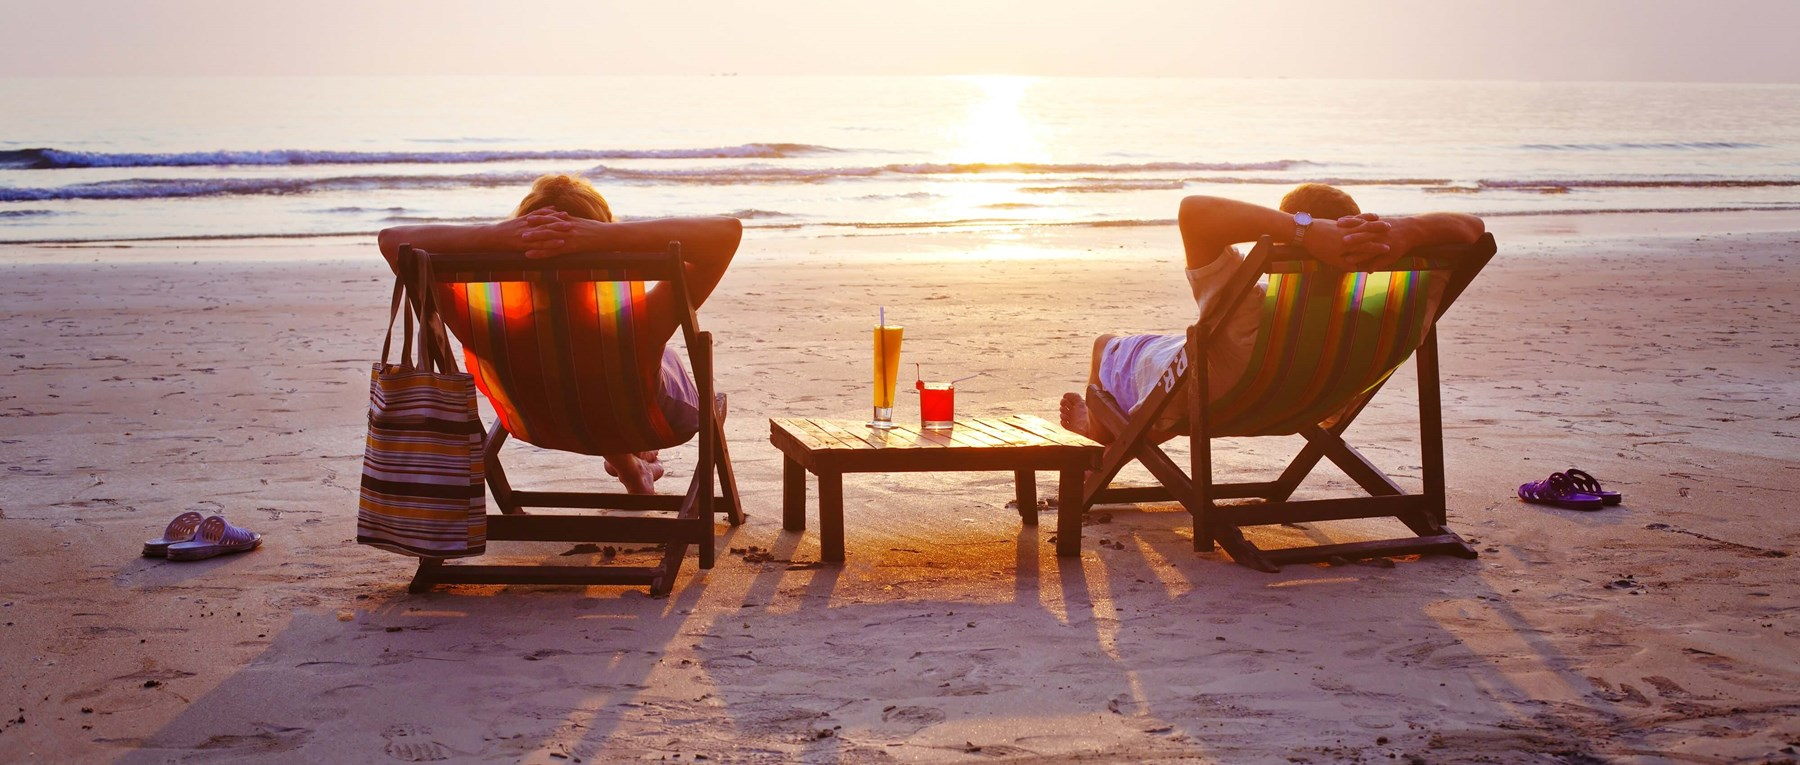 A couple sat on deck chairs on the beach